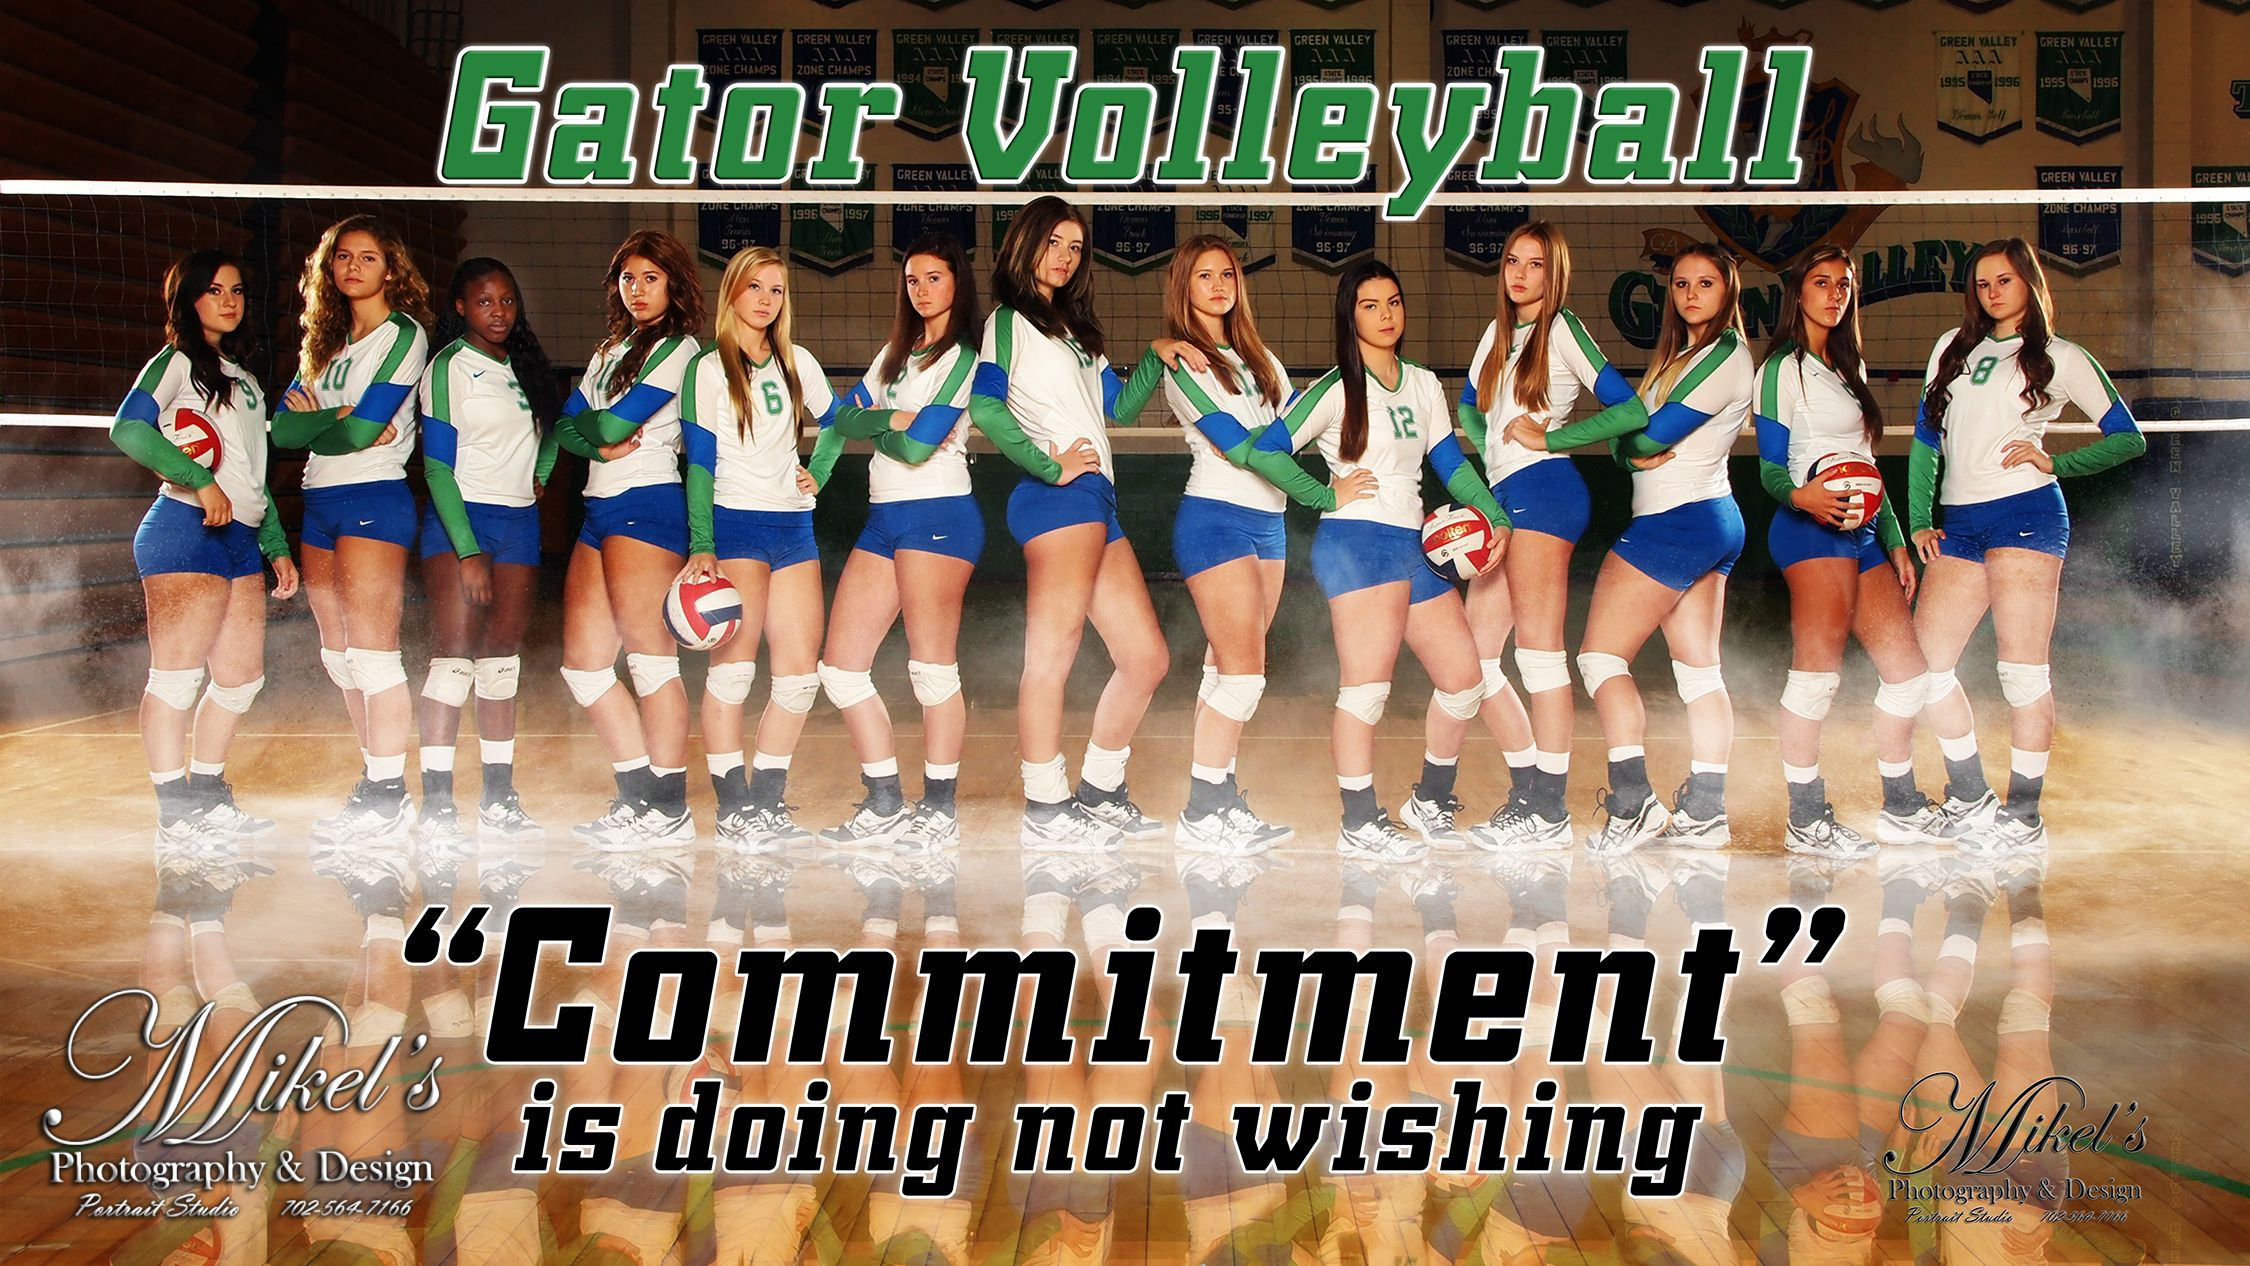 Green Valley Hs Volleyball Banner Mikel S Photography Design Www Mikelsphotography Com 702 564 Volleyball Photography Team Poster Ideas Volleyball Pictures